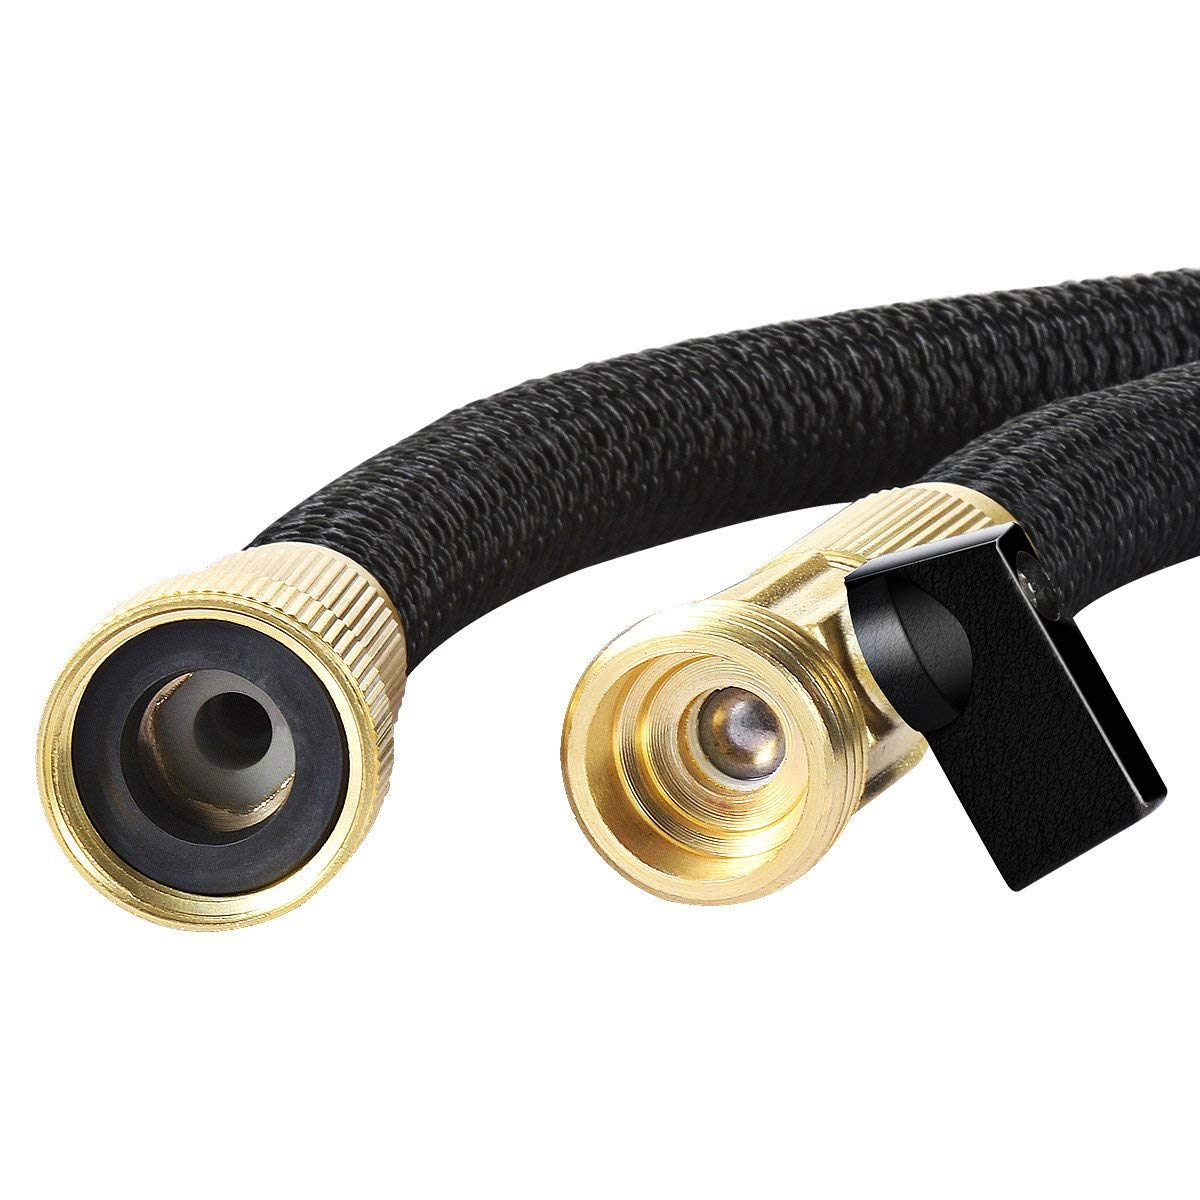 Ribool 50FT Expandable Garden Hose Pipes Strongest Double Latex Inner Tube Anti-Leaking Magic Garden Hosepipe with 9 Function Spray Gun+Solid Brass Connector Fittings Brass Valve Storage bag by Ribool (Image #3)